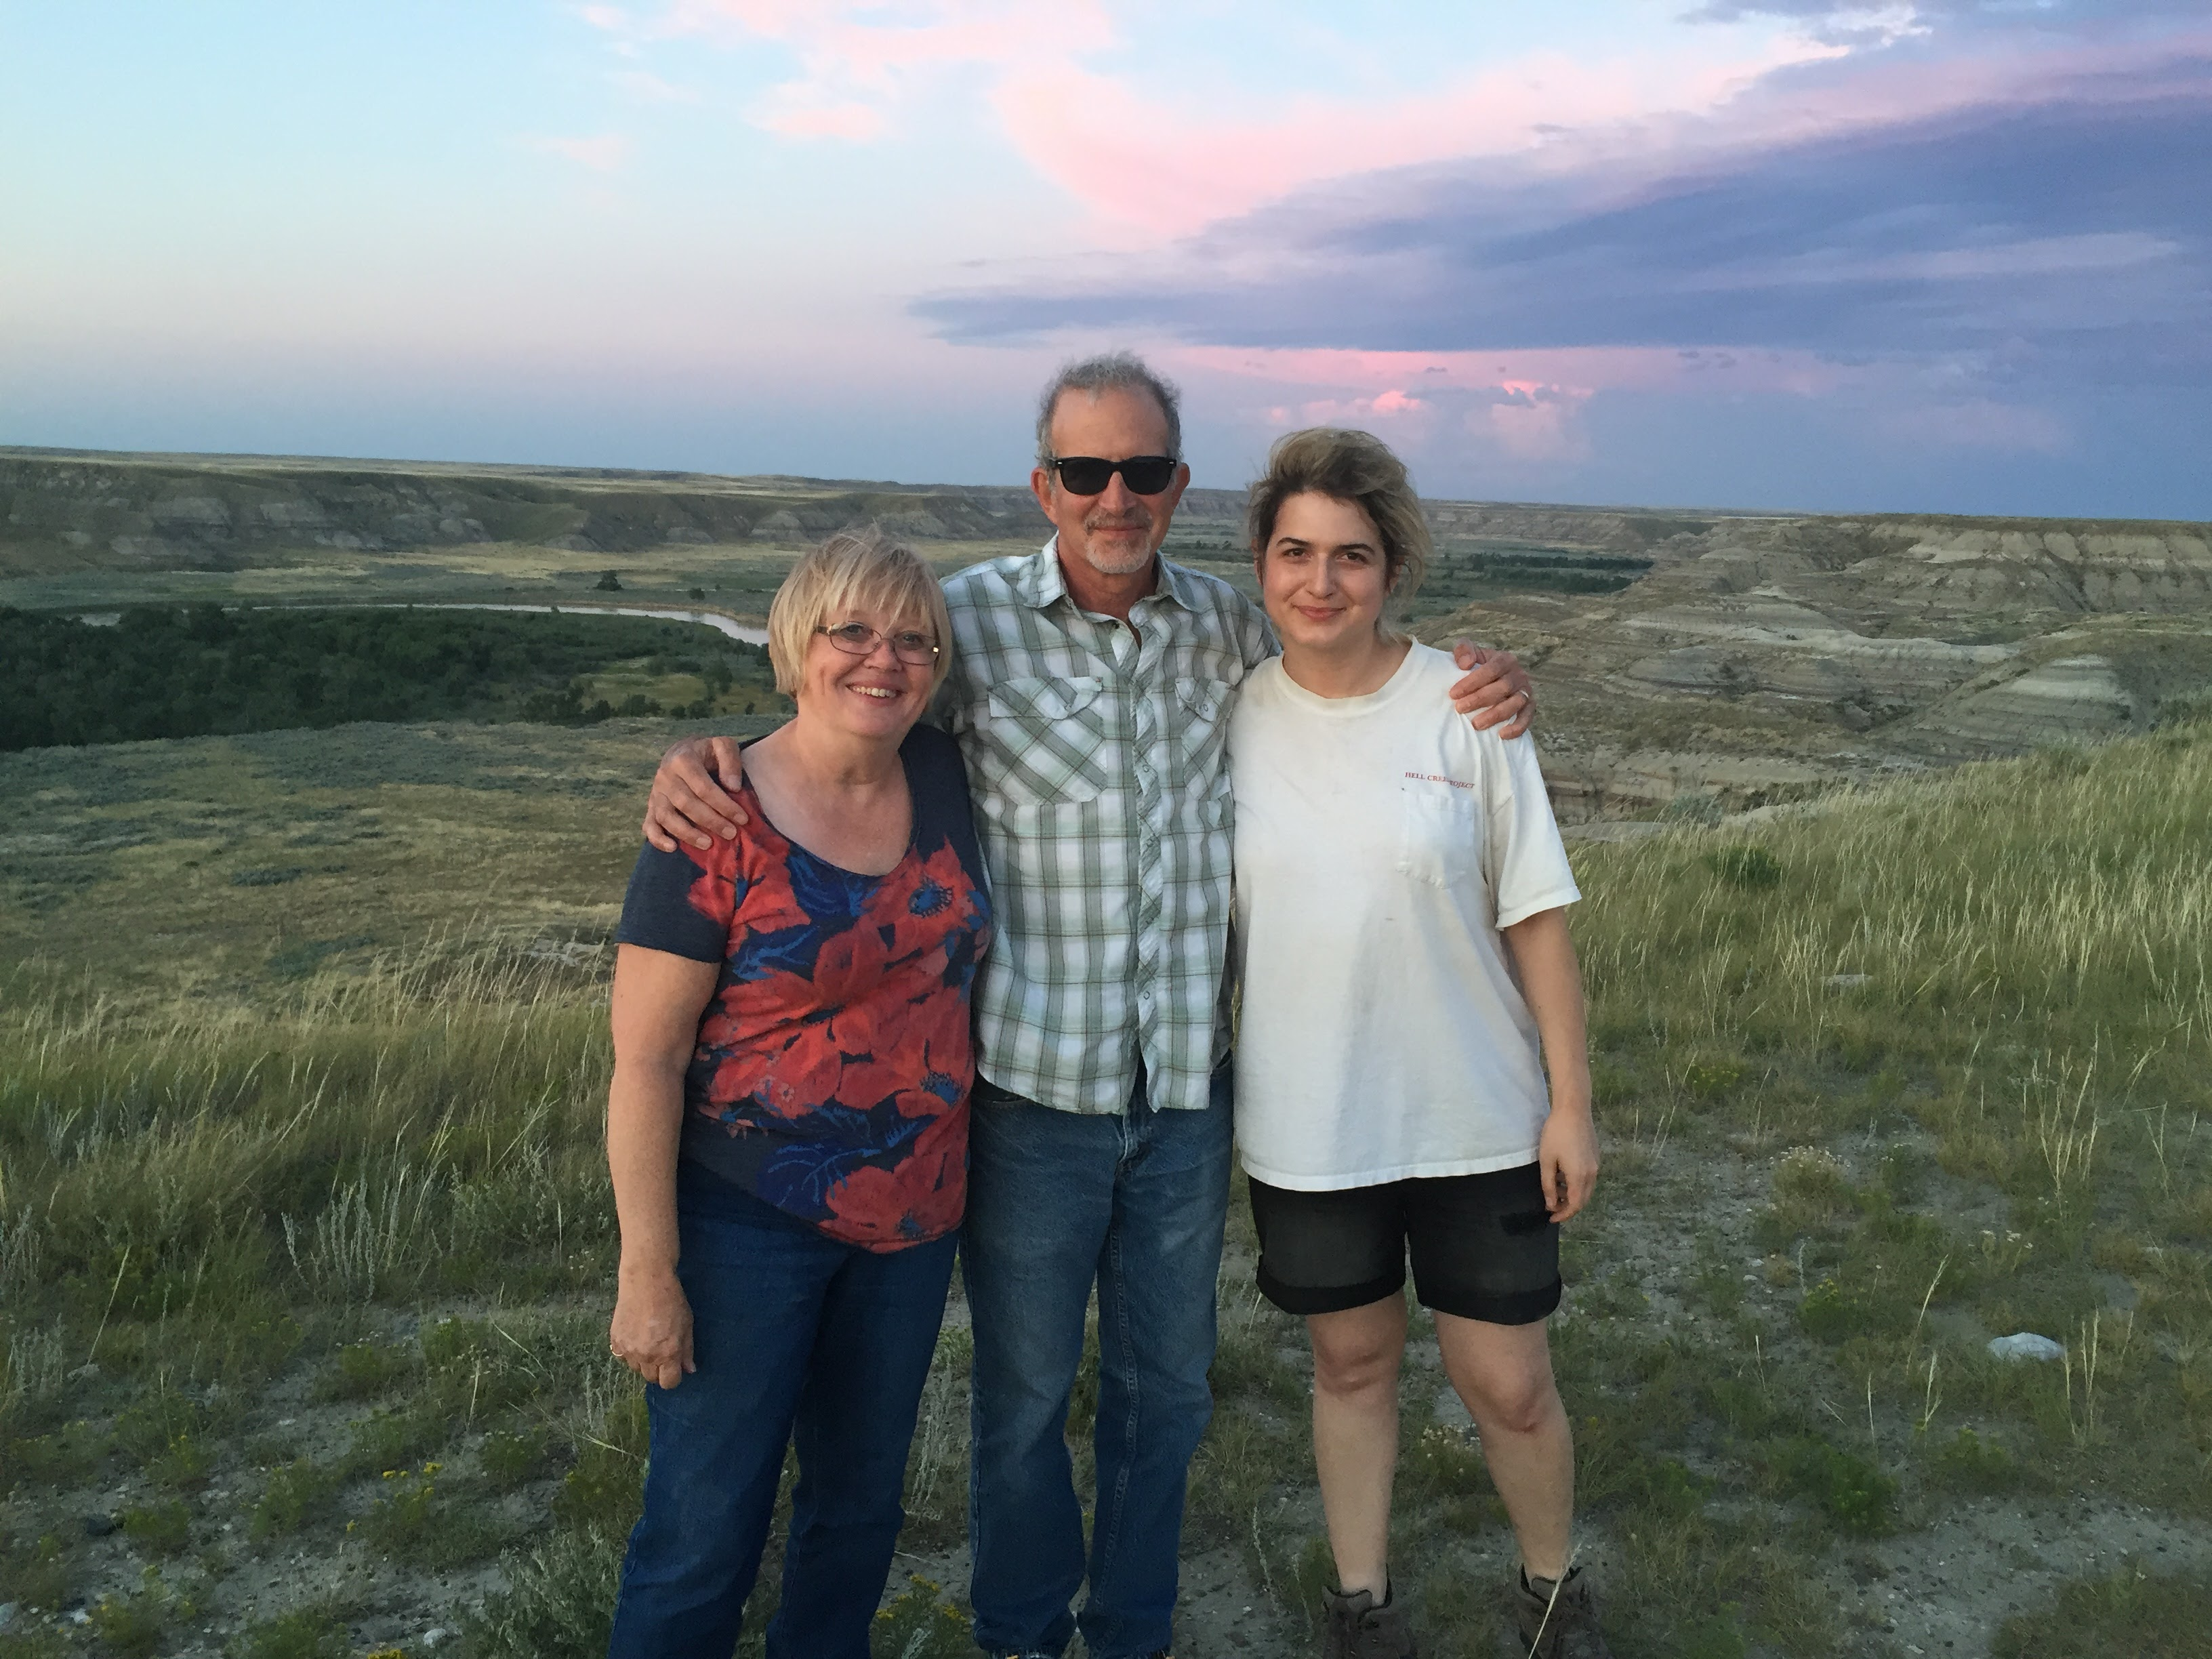 Lila Redding, Mark and Beth Goodwin on Dan and Lila Redding's farm in Montana, 2016